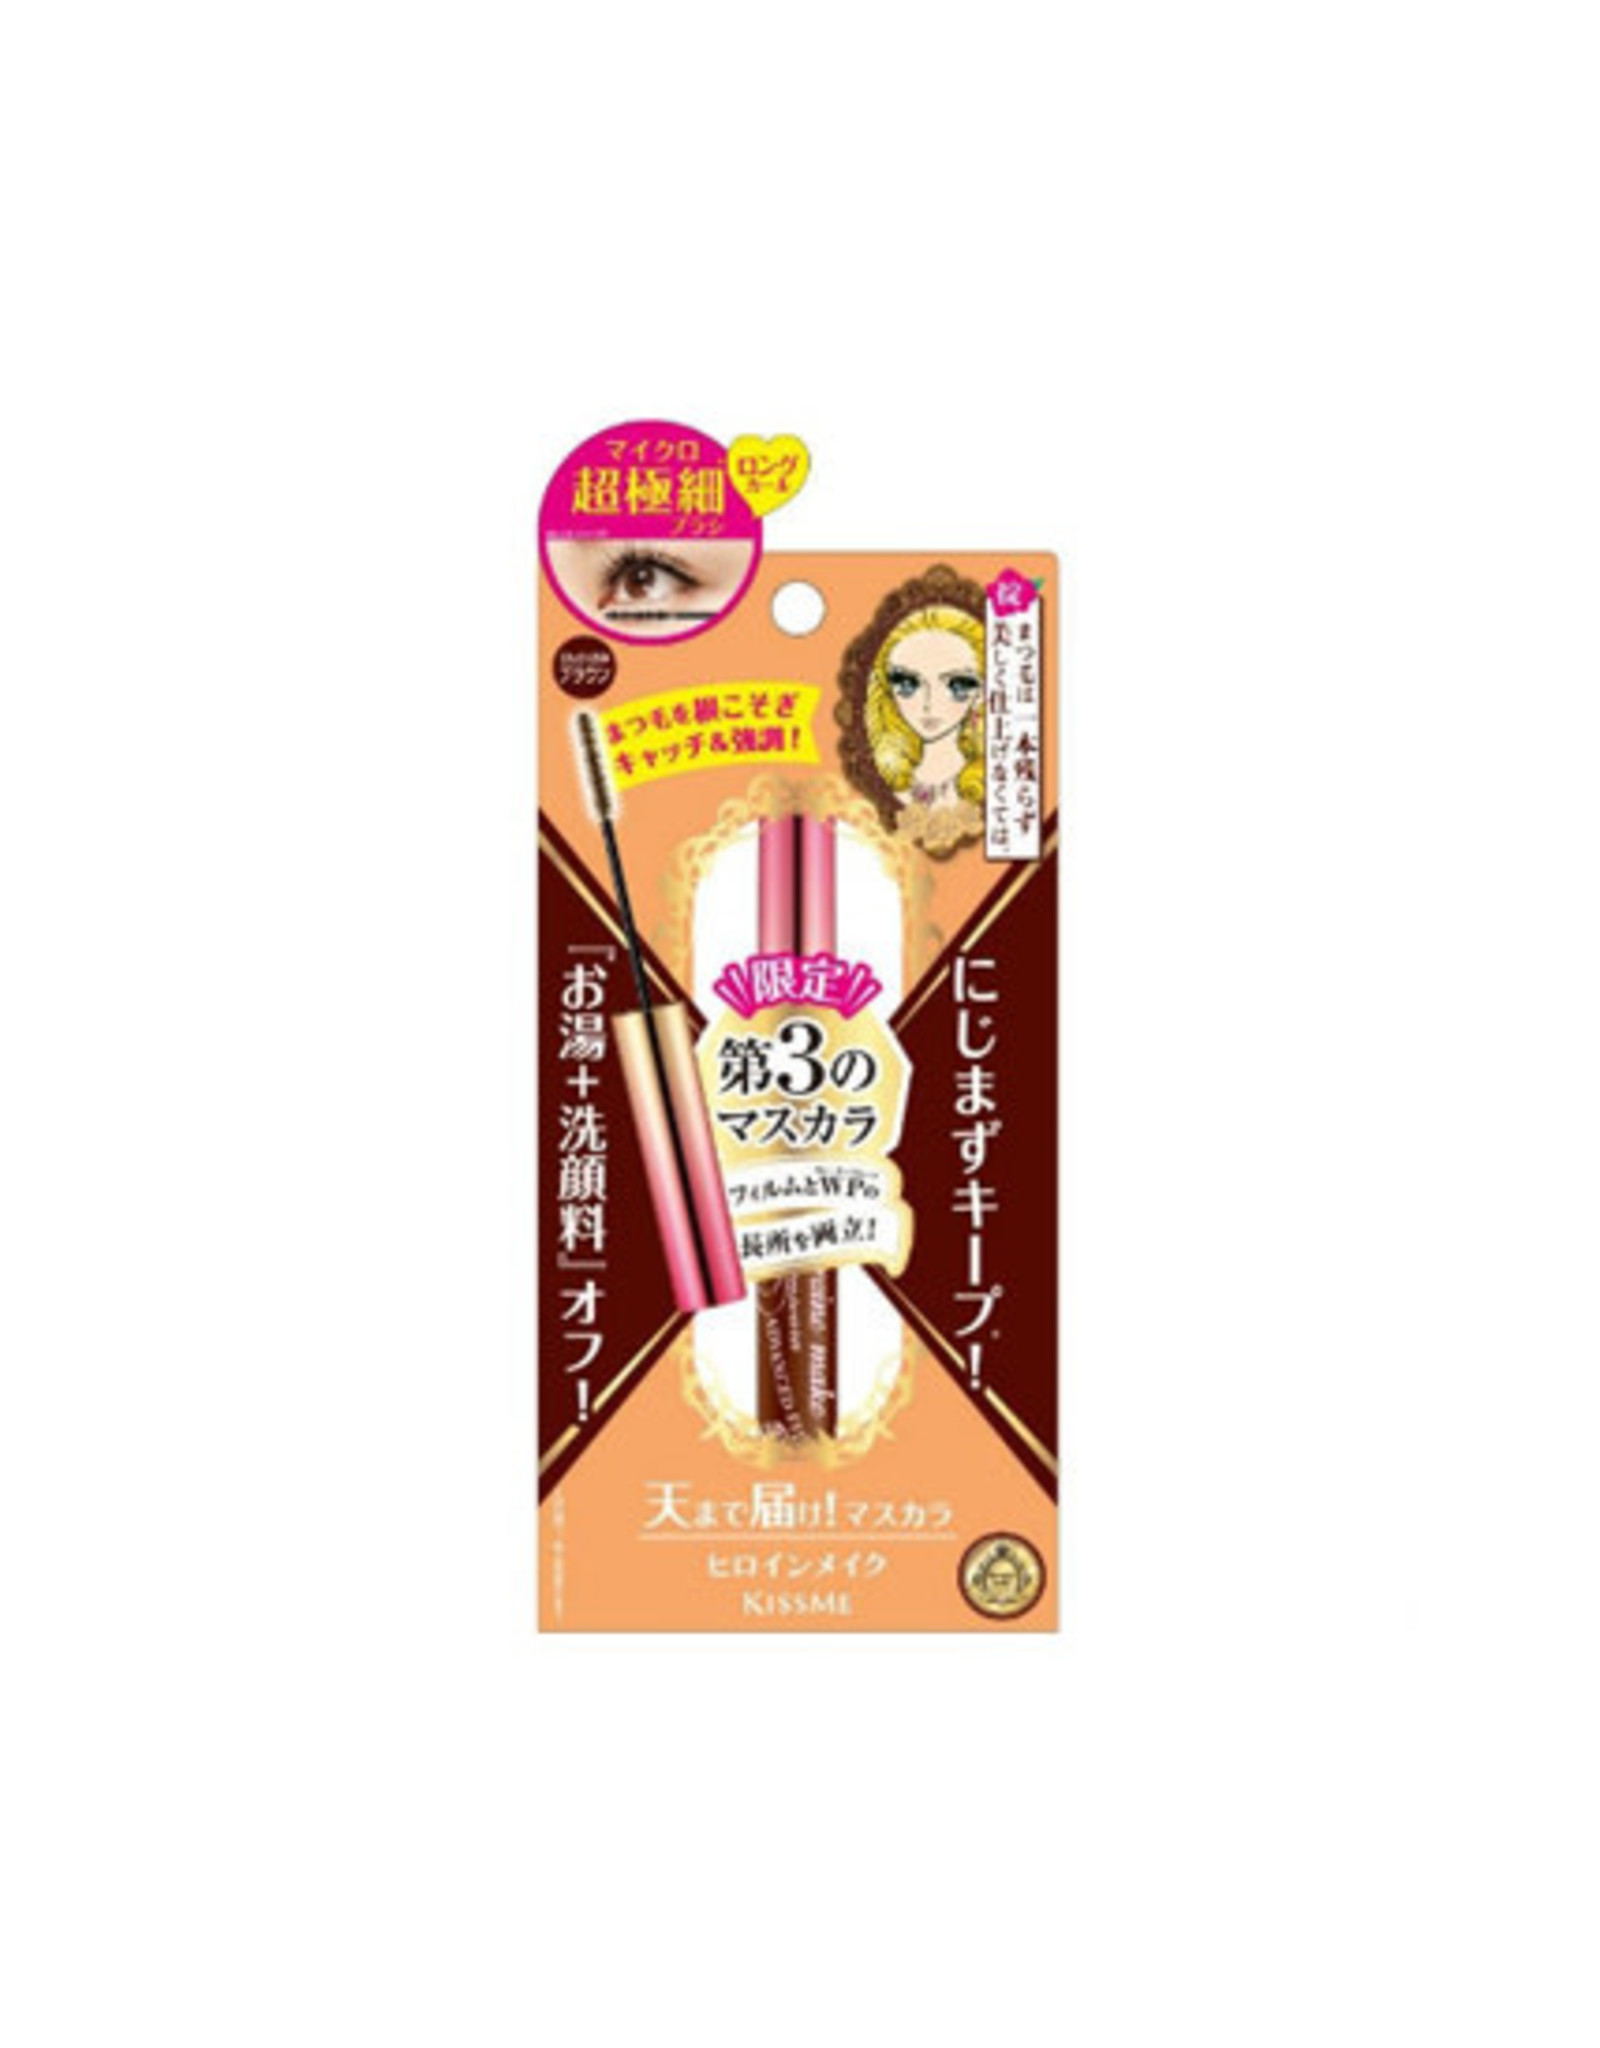 Heroine KissMe Make Micro Mascara Advanced Film